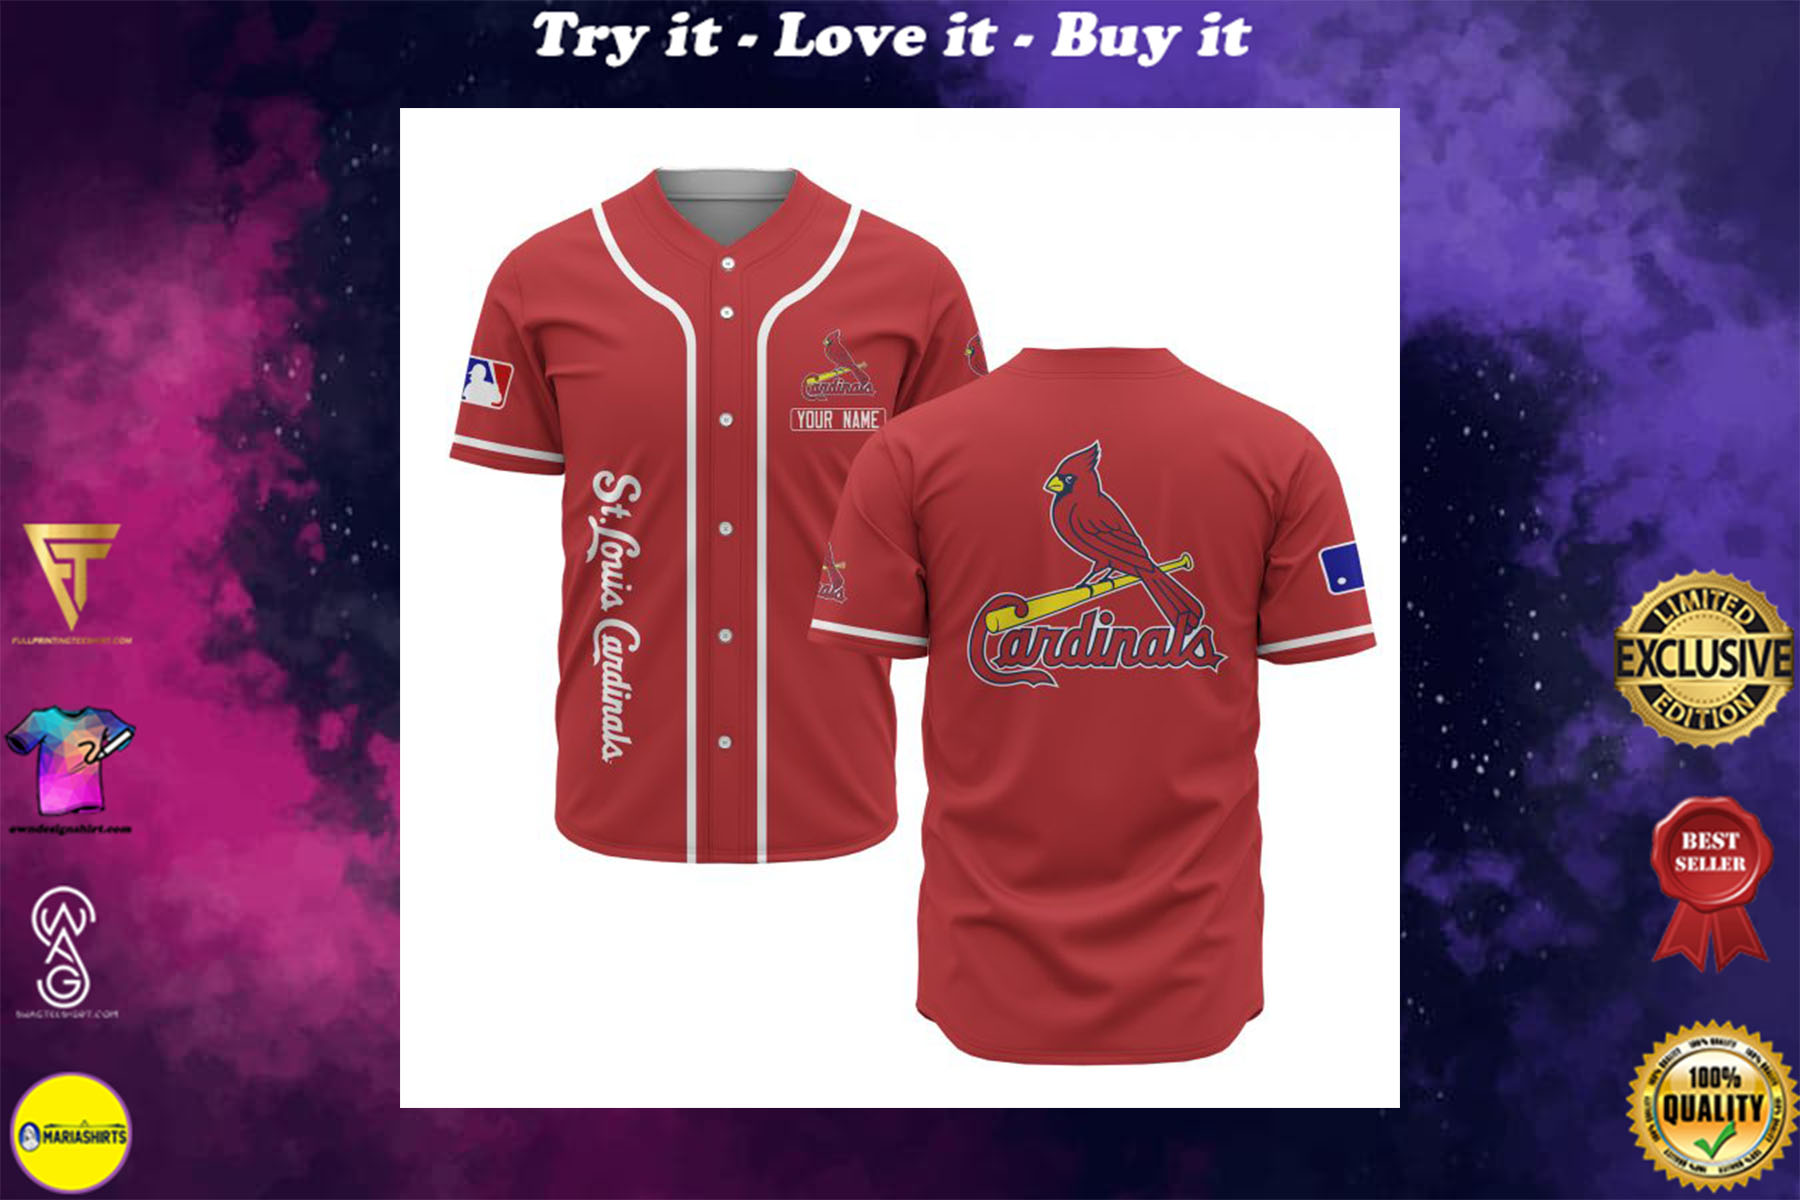 [special edition] custom name st louis cardinals baseball shirt - maria